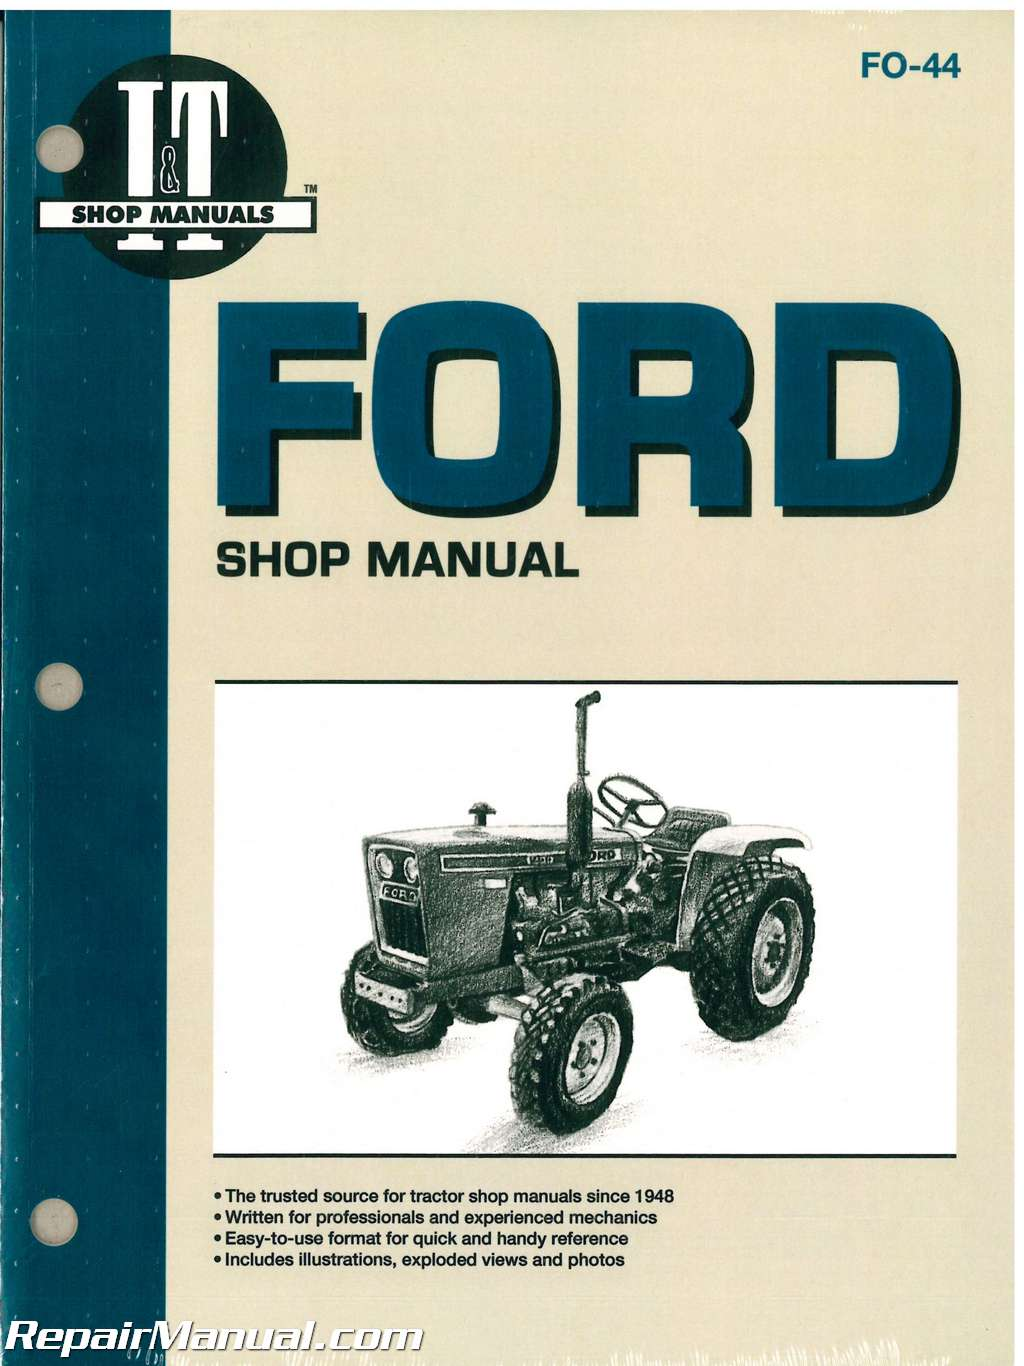 ford 1210 wiring diagram wiring diagram rh blaknwyt co ford 1520 tractor wiring diagram ford 1520 tractor wiring diagram